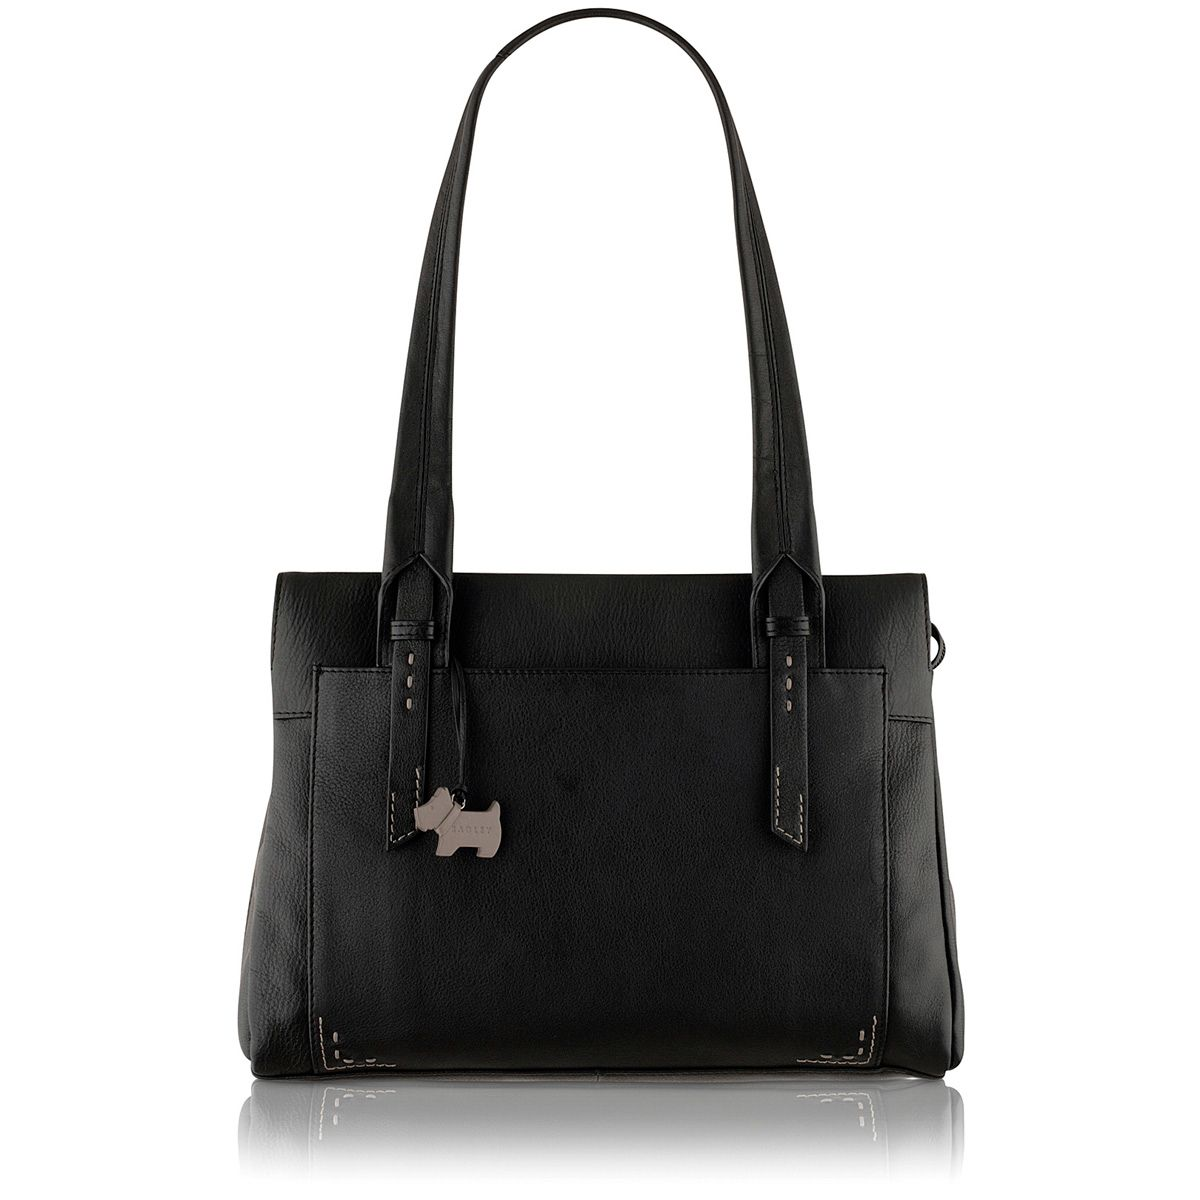 Barnsley black medium leather shoulder bag